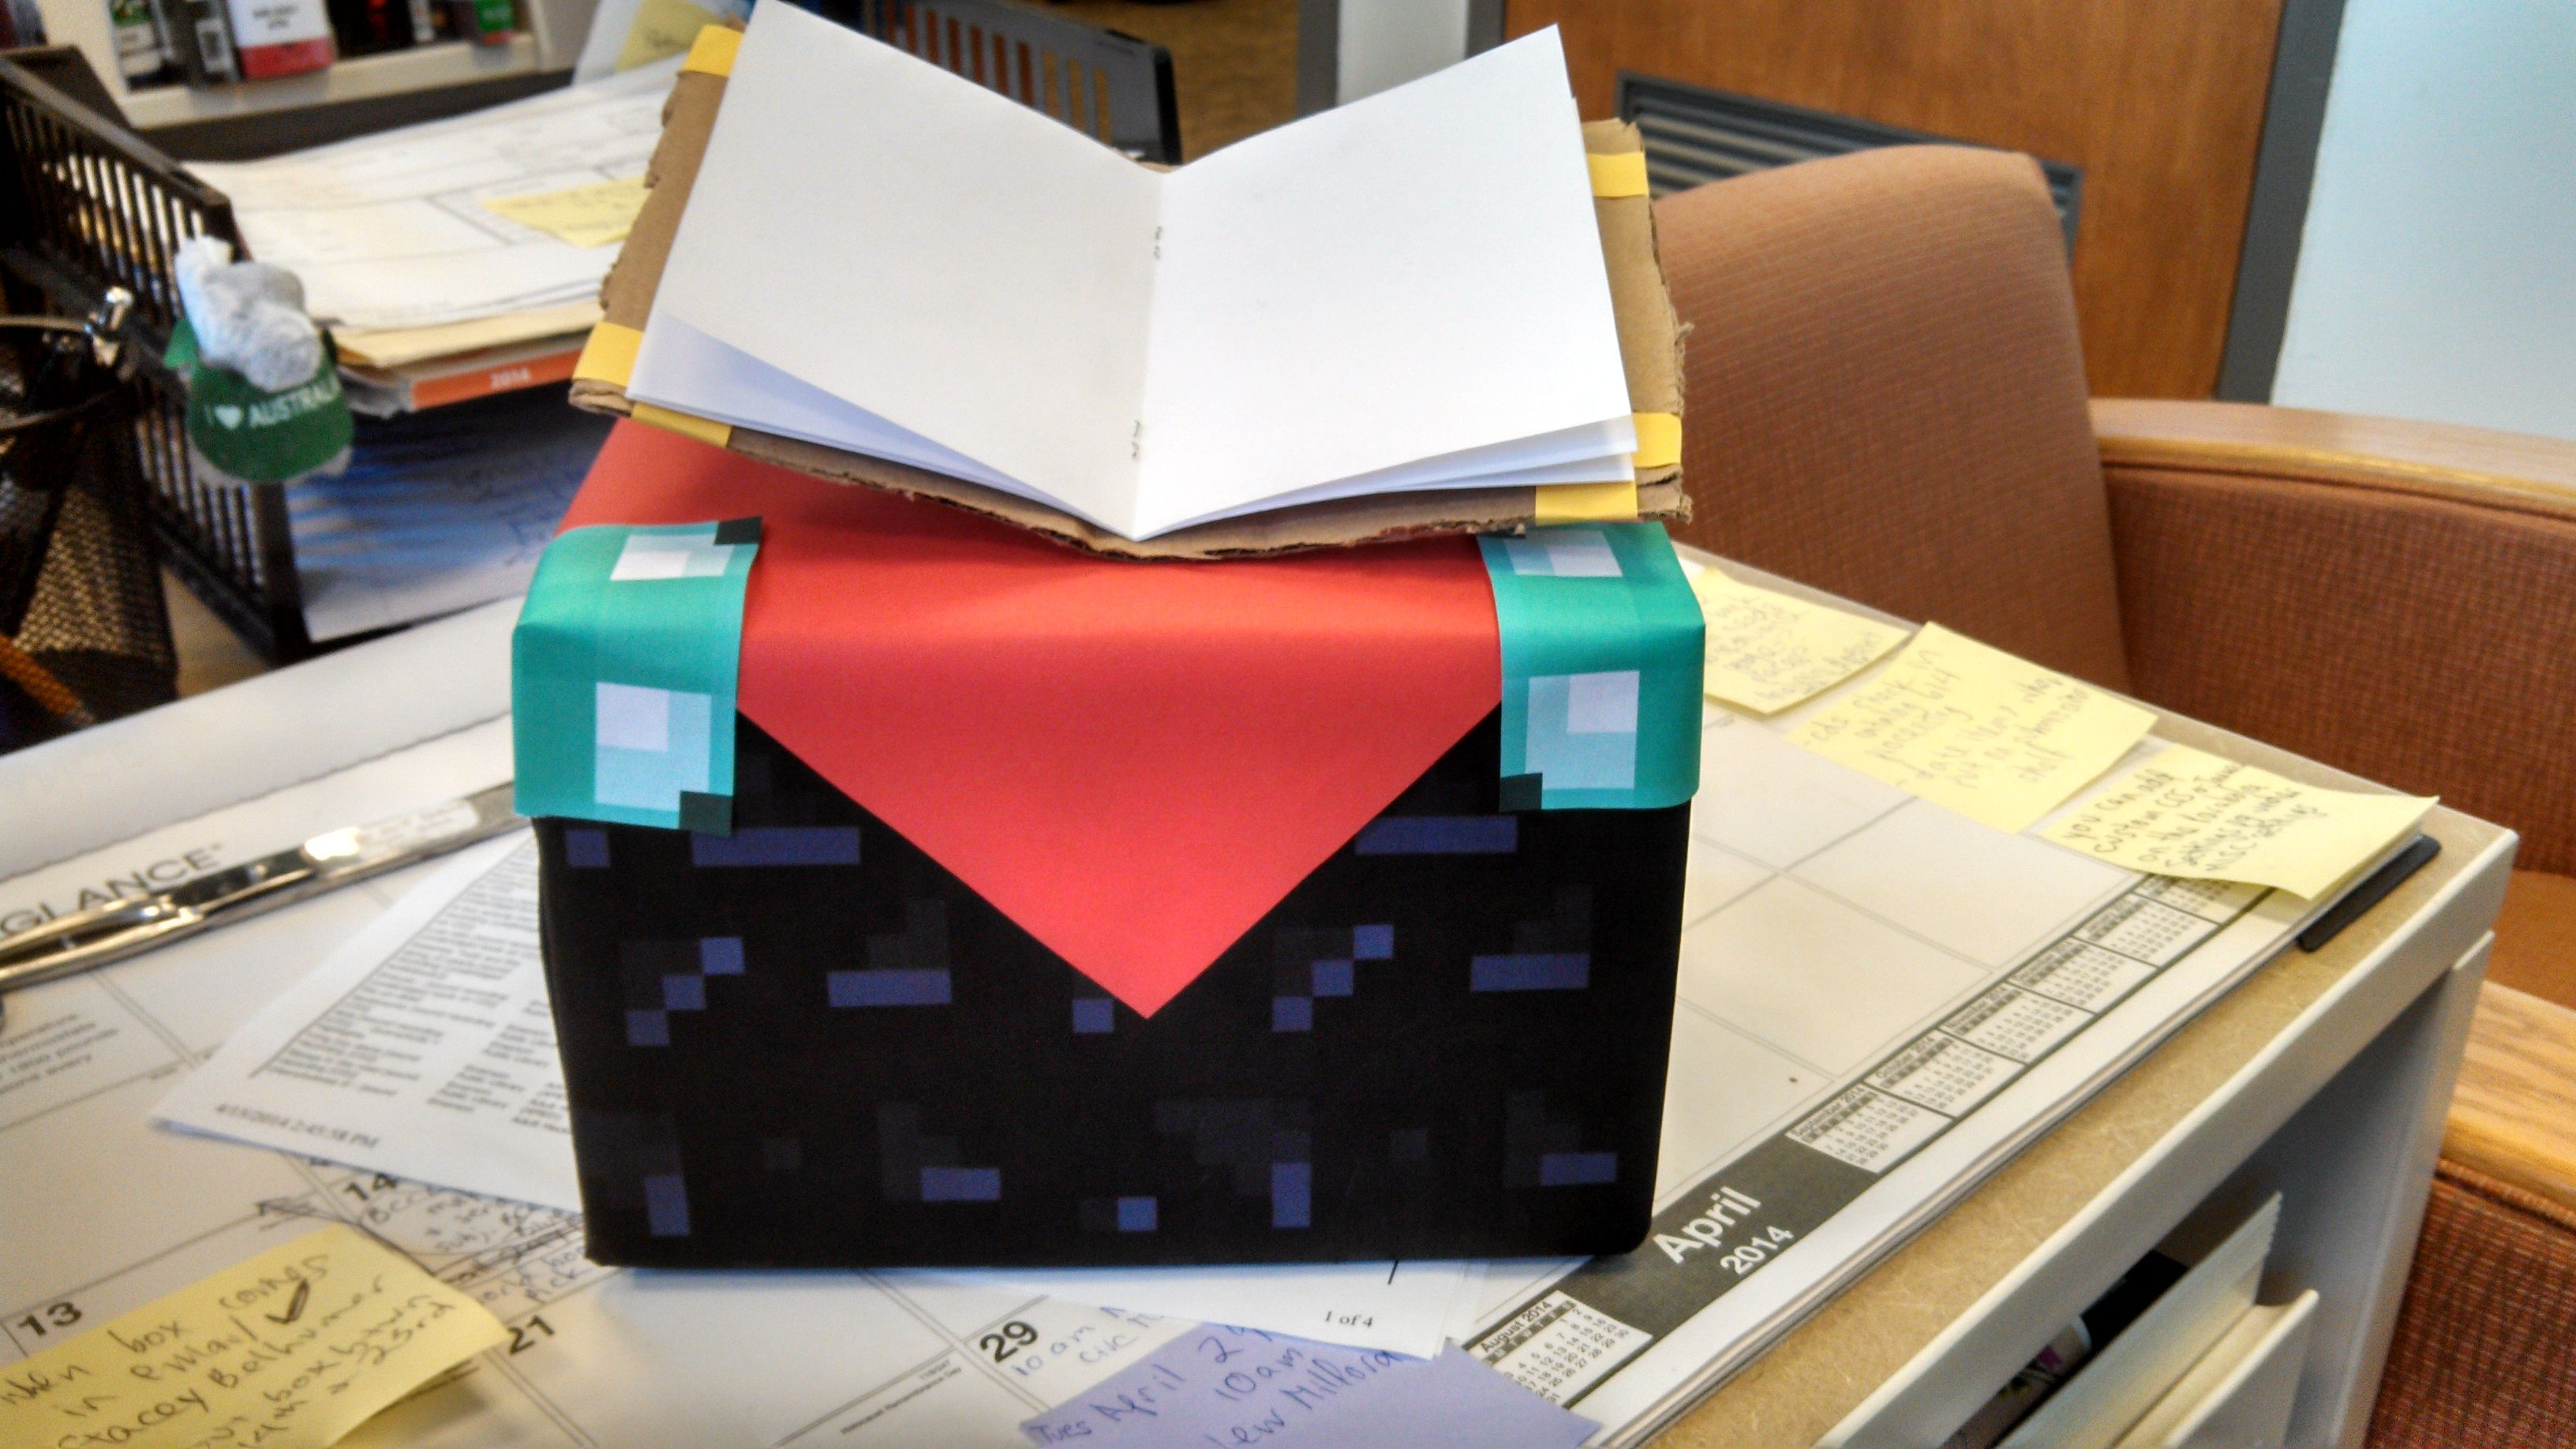 Diy Enchanting Table From The Video Game Minecraft Using A